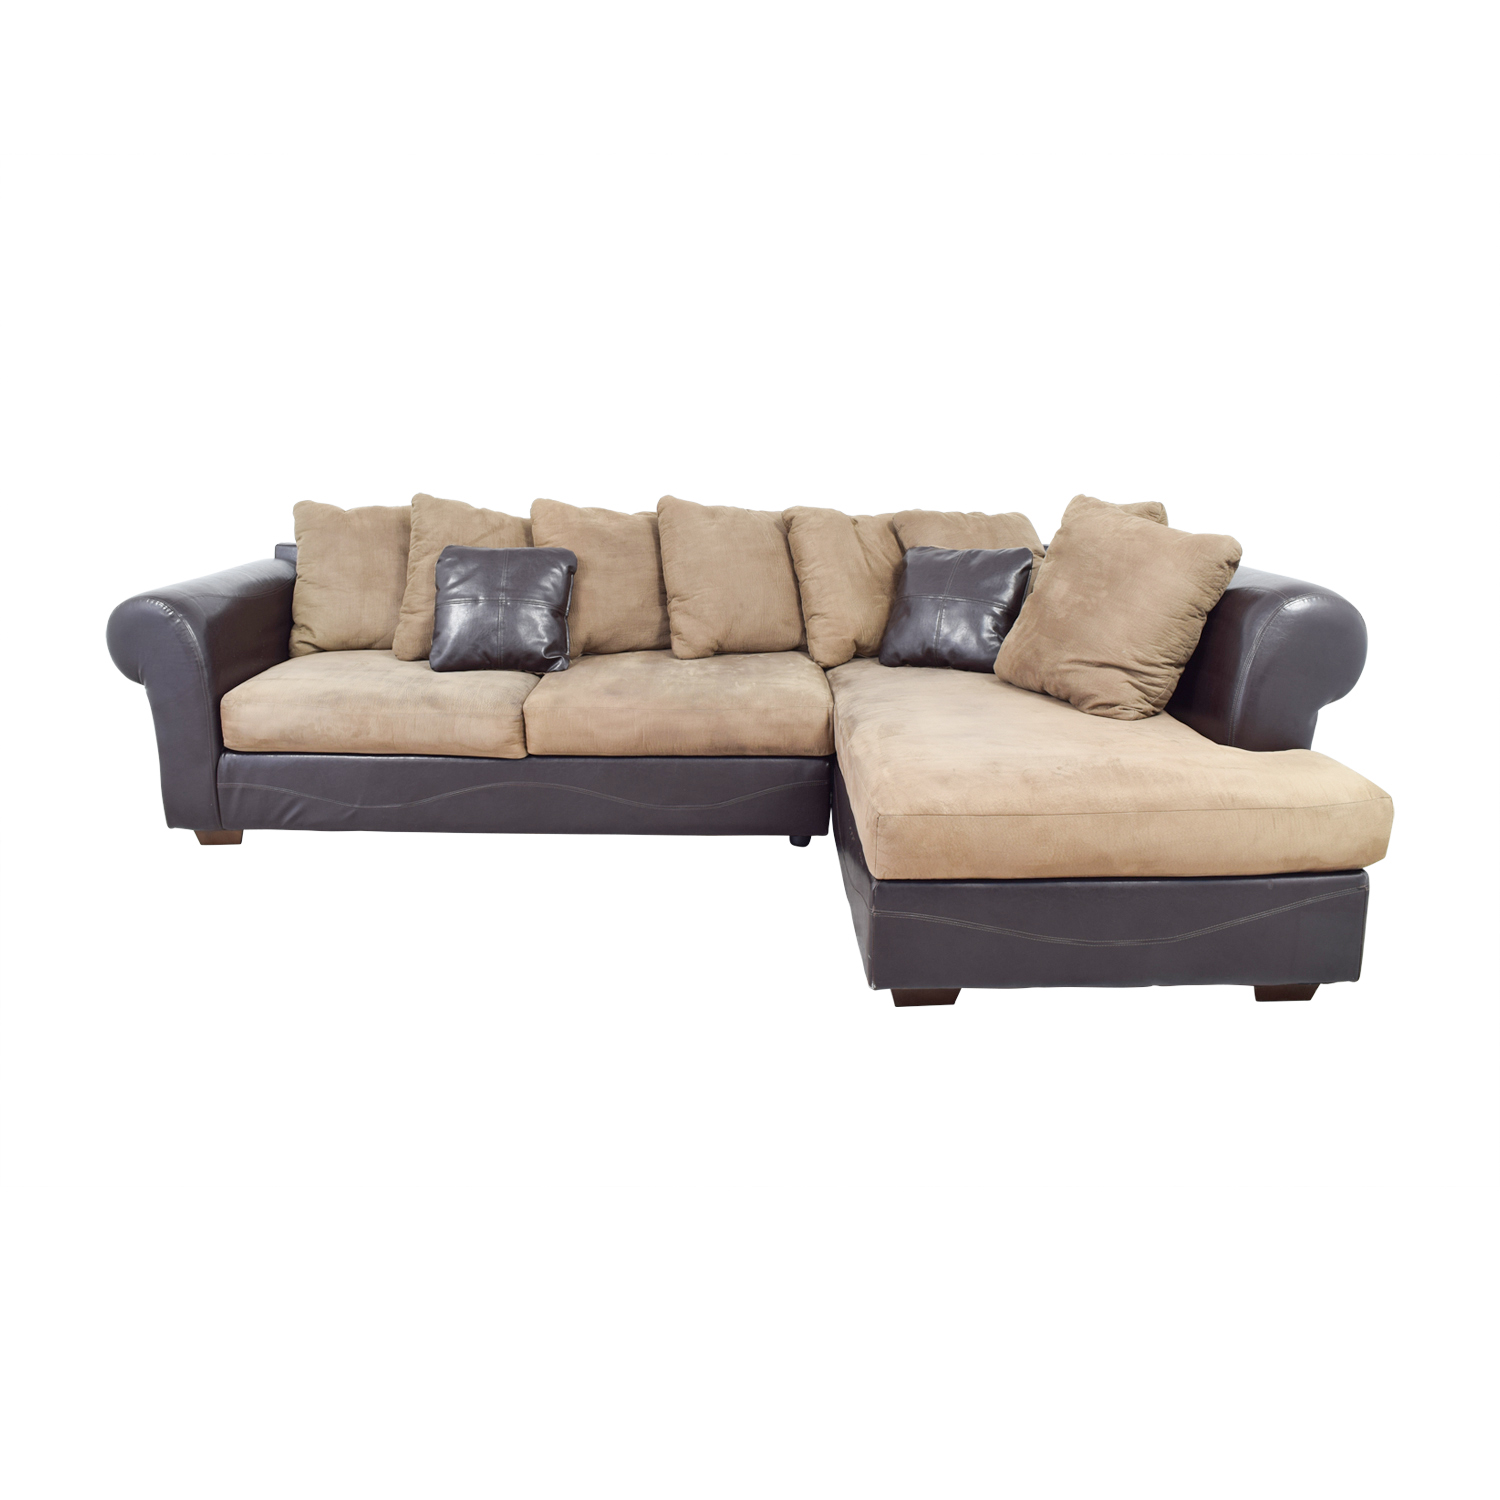 68 Off Ashley Furniture Brown Leather And Tan Microfiber Chaise Sectional Sofas